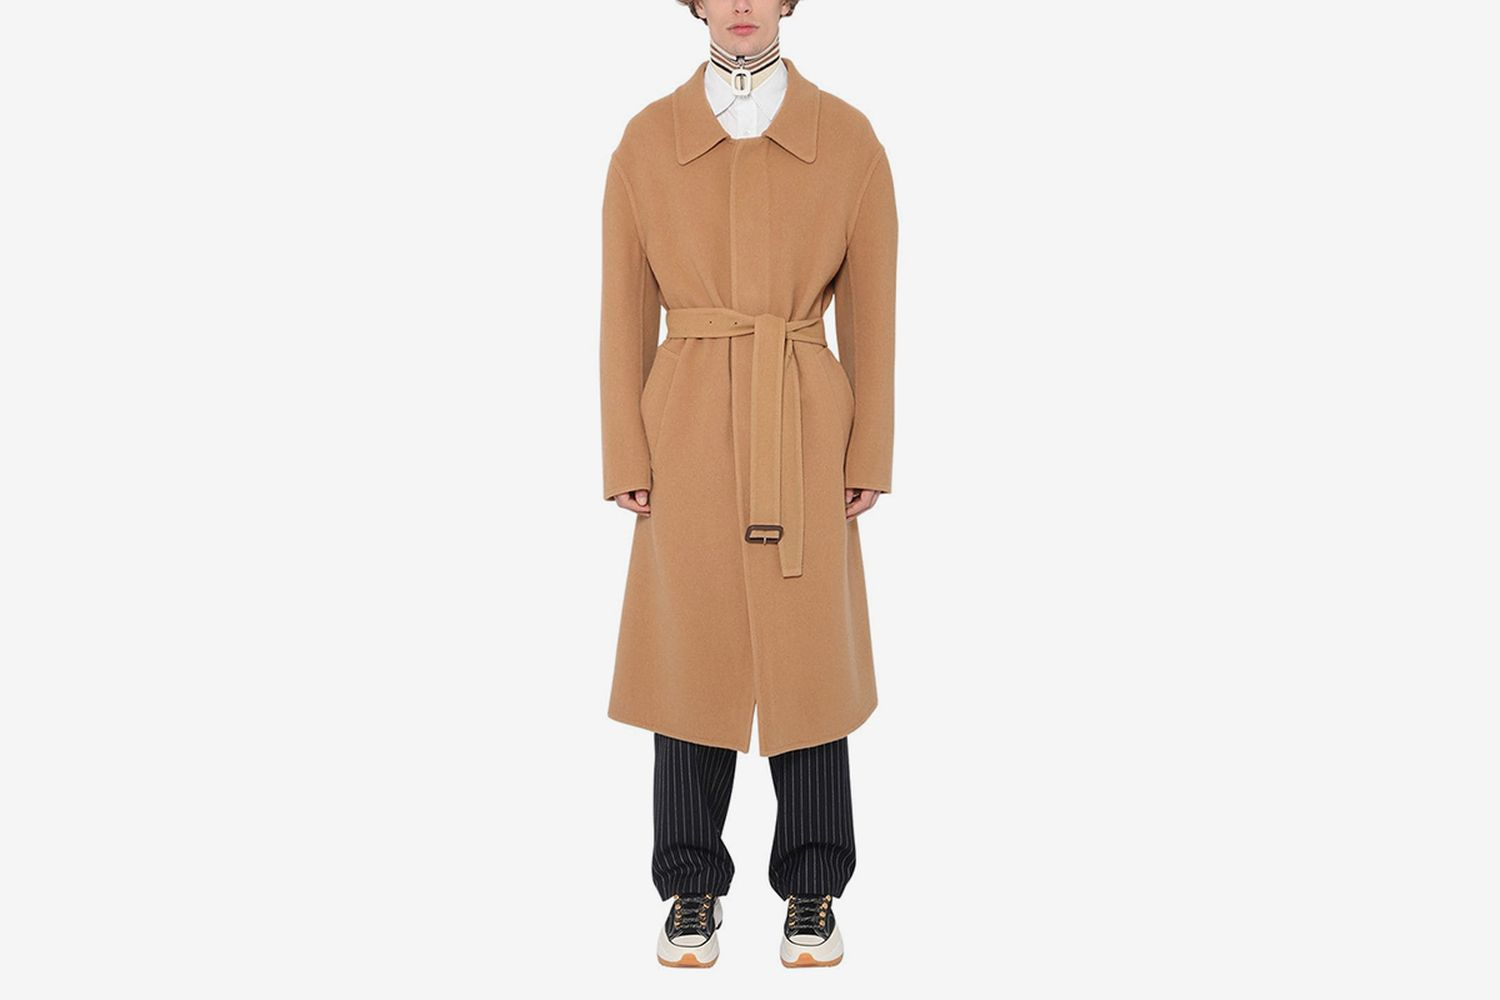 Oversize Cashmere & Cotton Coat W/ Belt